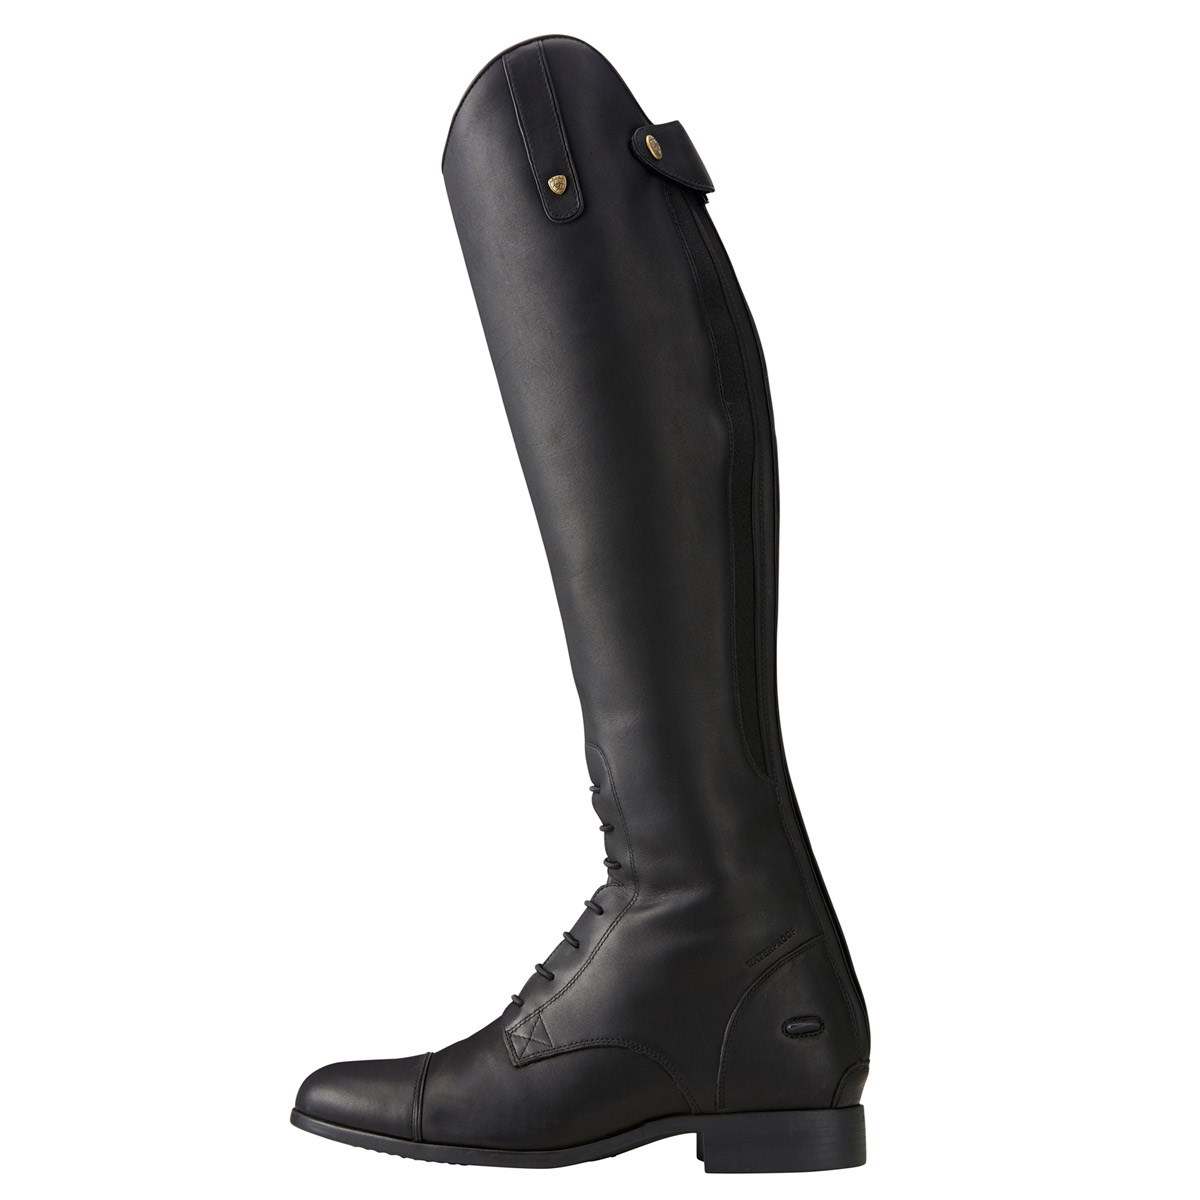 782afa39bc53 Ariat Heritage Compass H2O Mens Tall Riding Boots - Black - Redpost ...